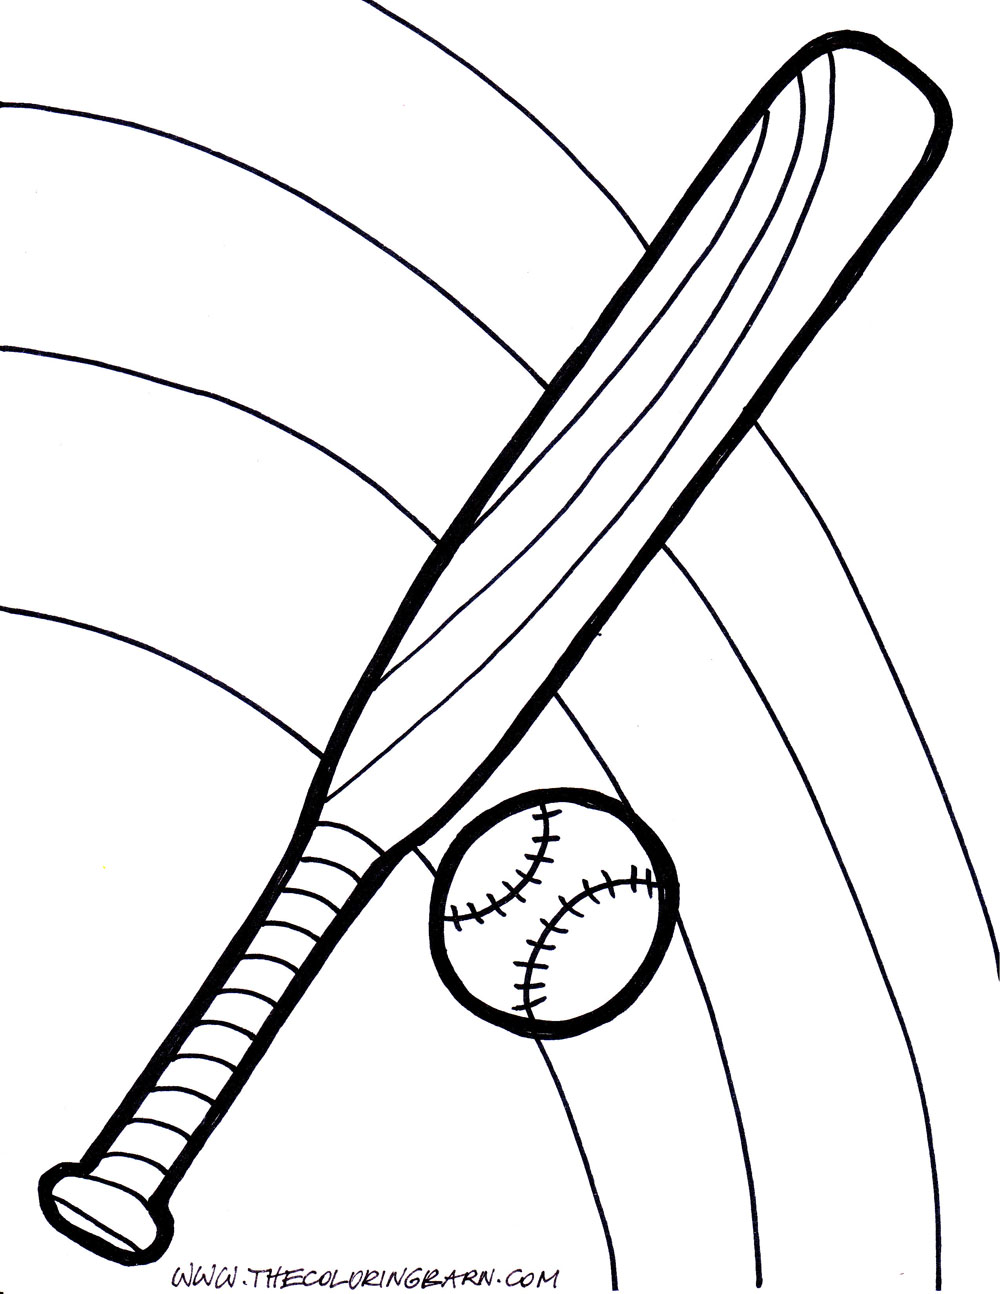 coloring pages of baseball bats - photo#28